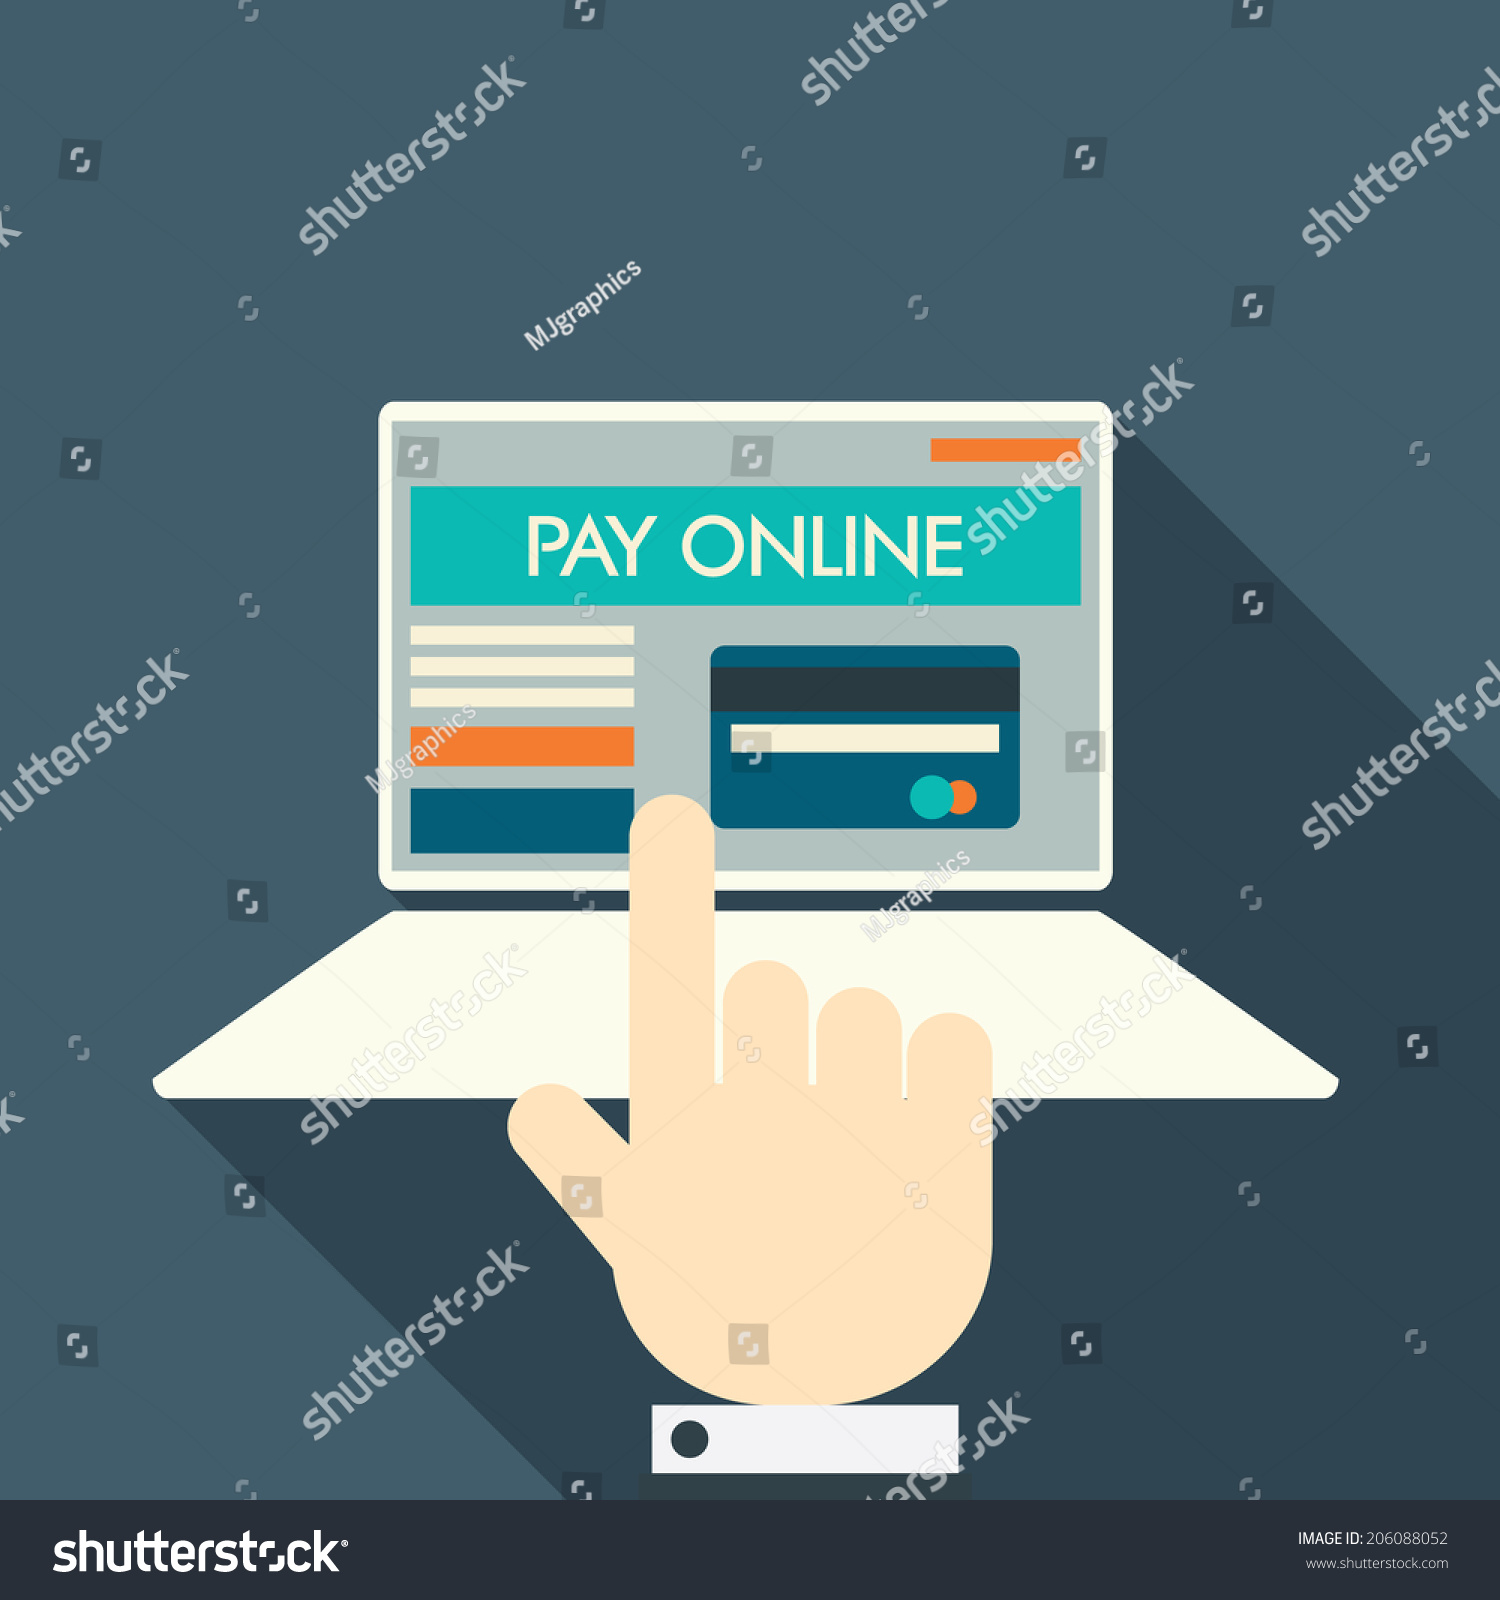 Pay Online Concept On Modern Technology Stock Vector ...